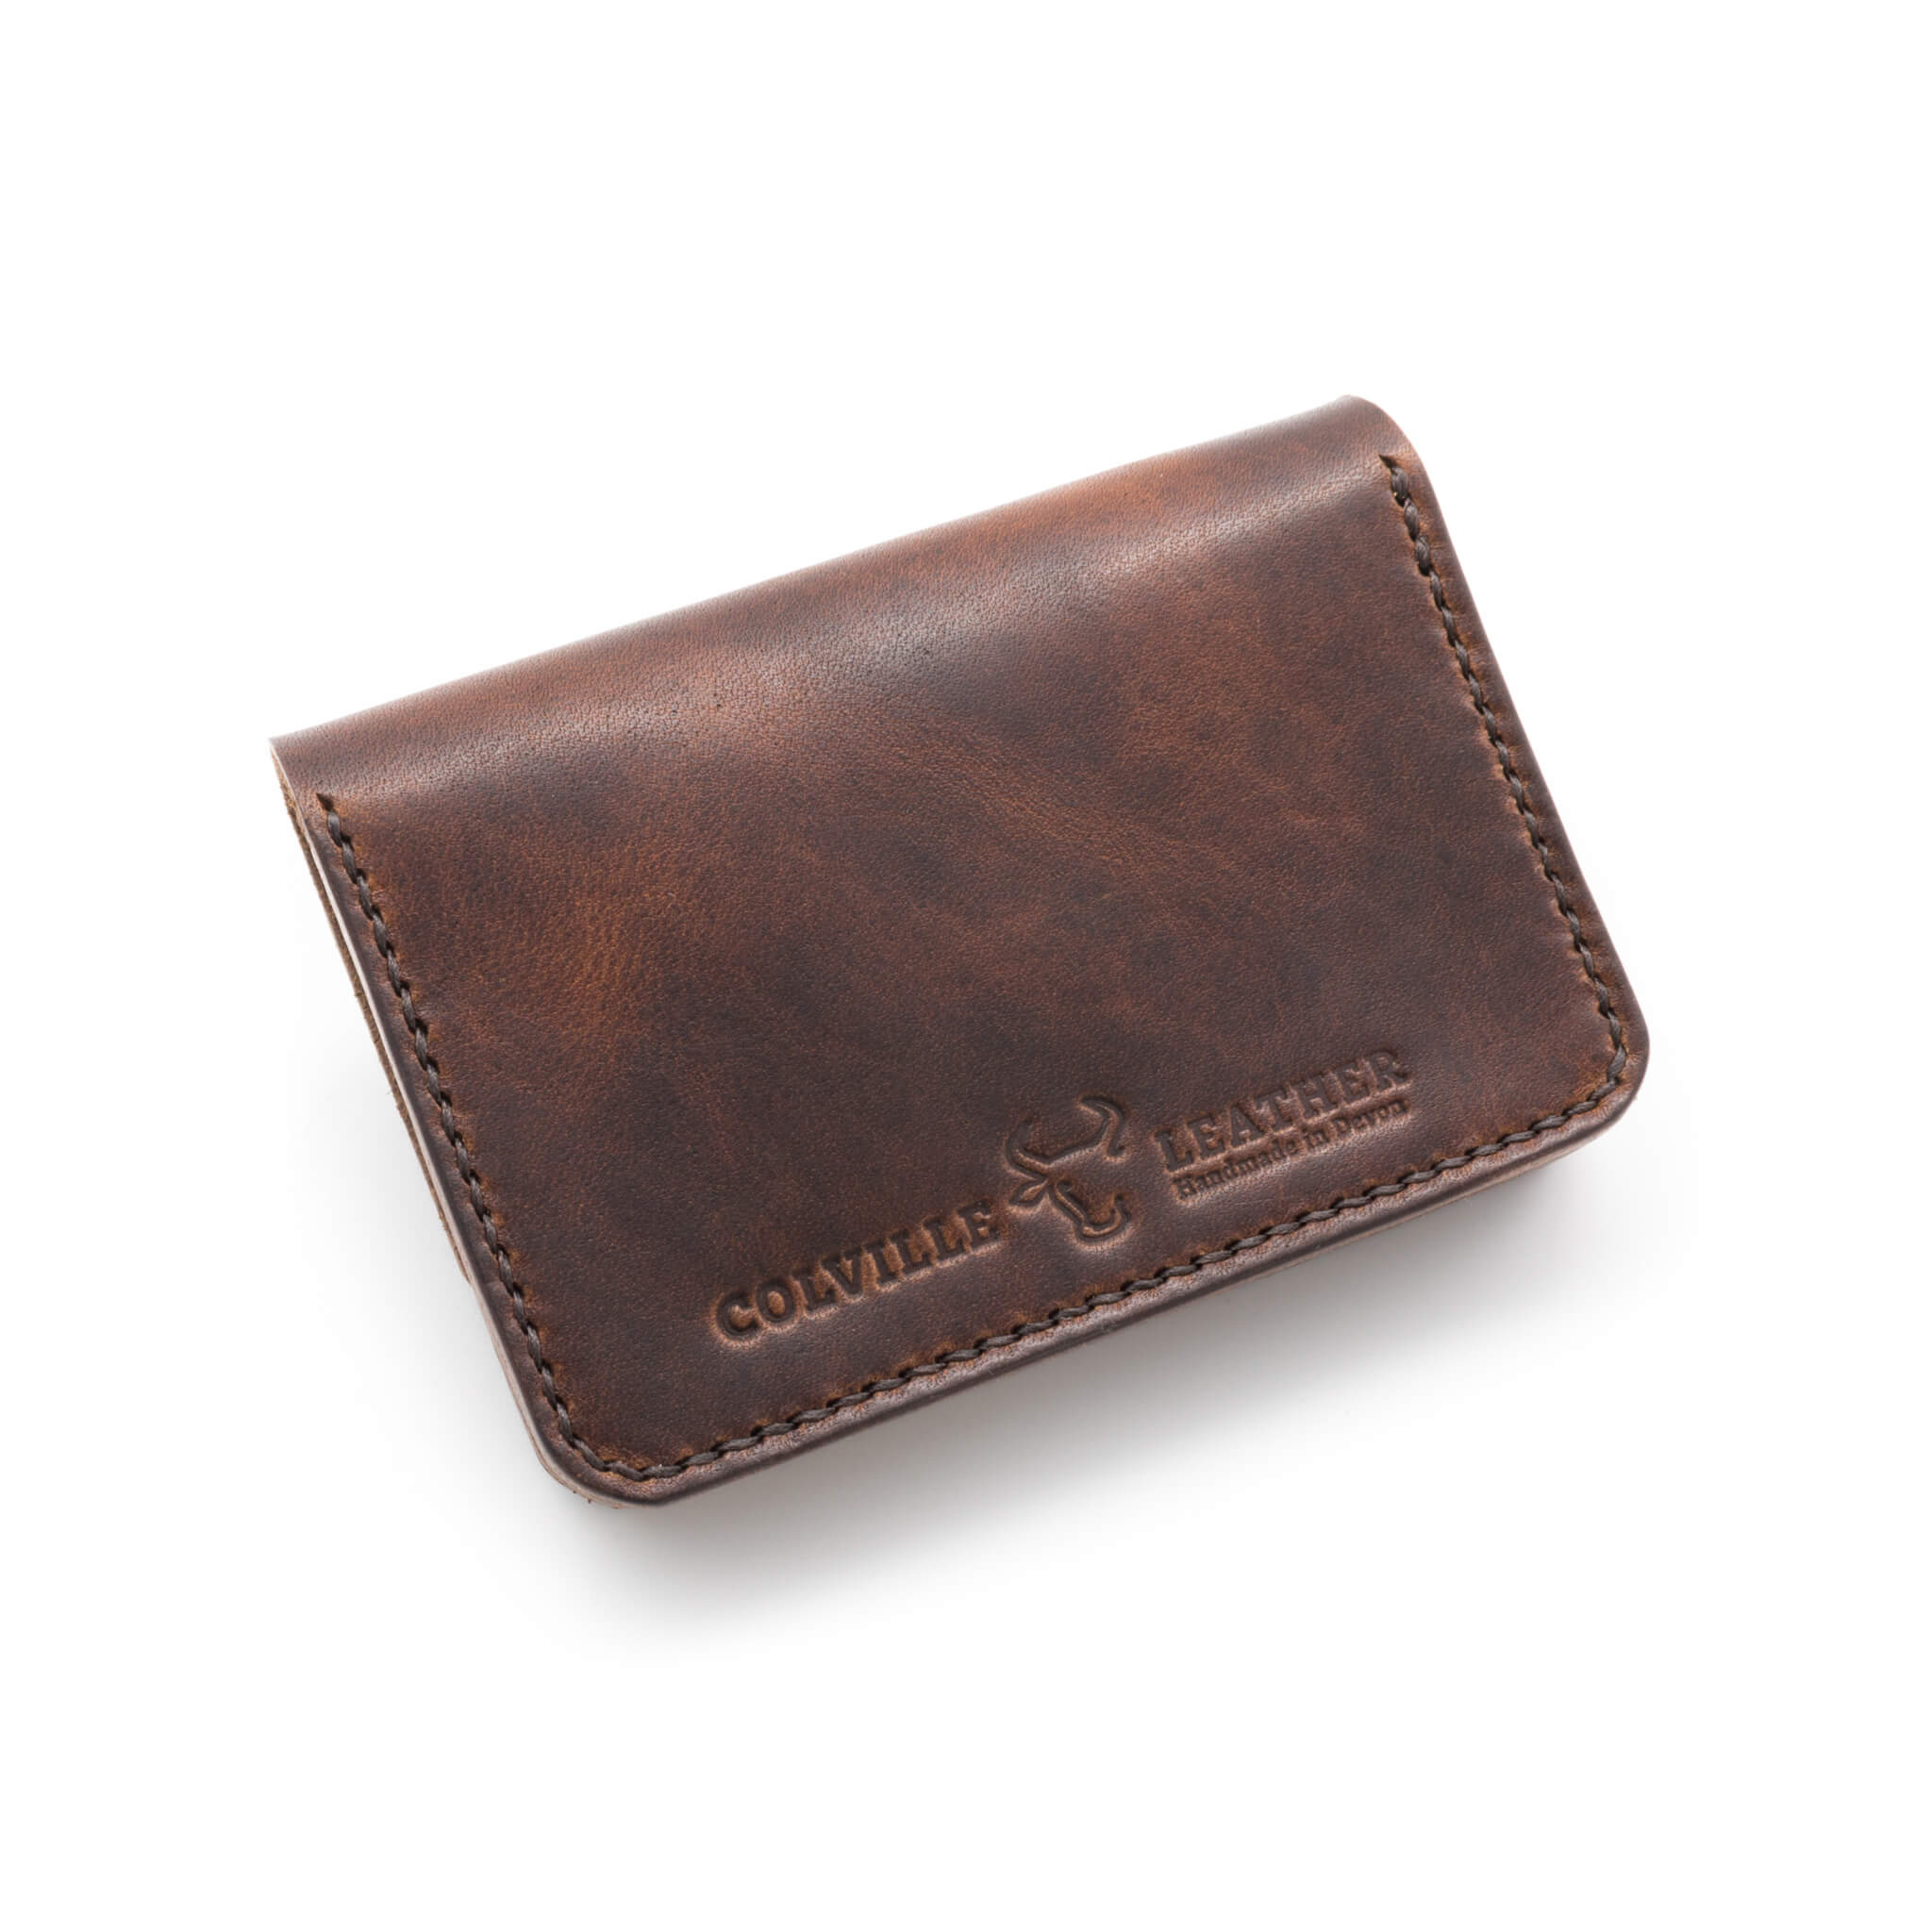 Makers mark on the back of leather biker wallet